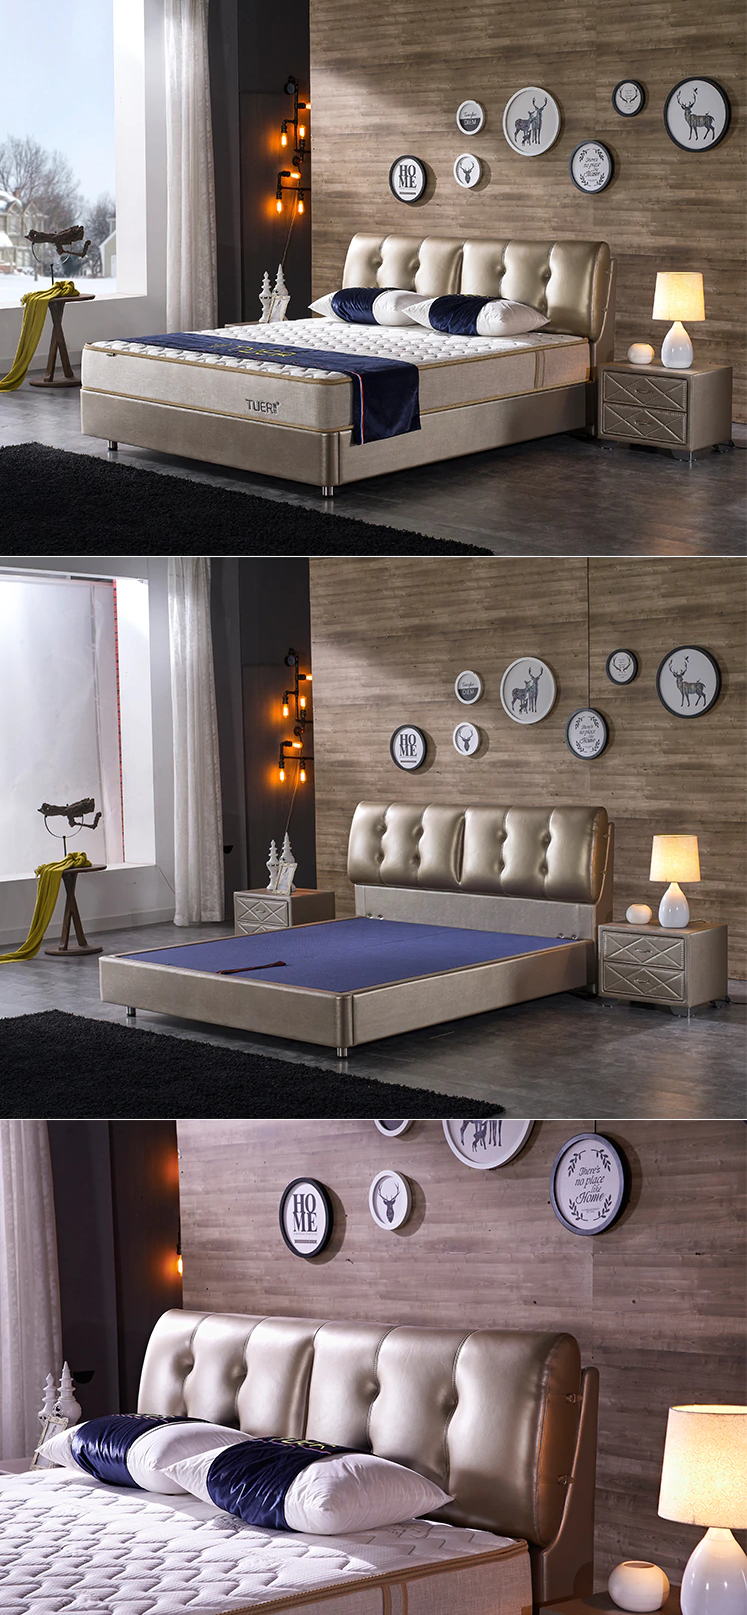 7.SIMPHOME.COM Gold Colored Bedroom with Wood Accents